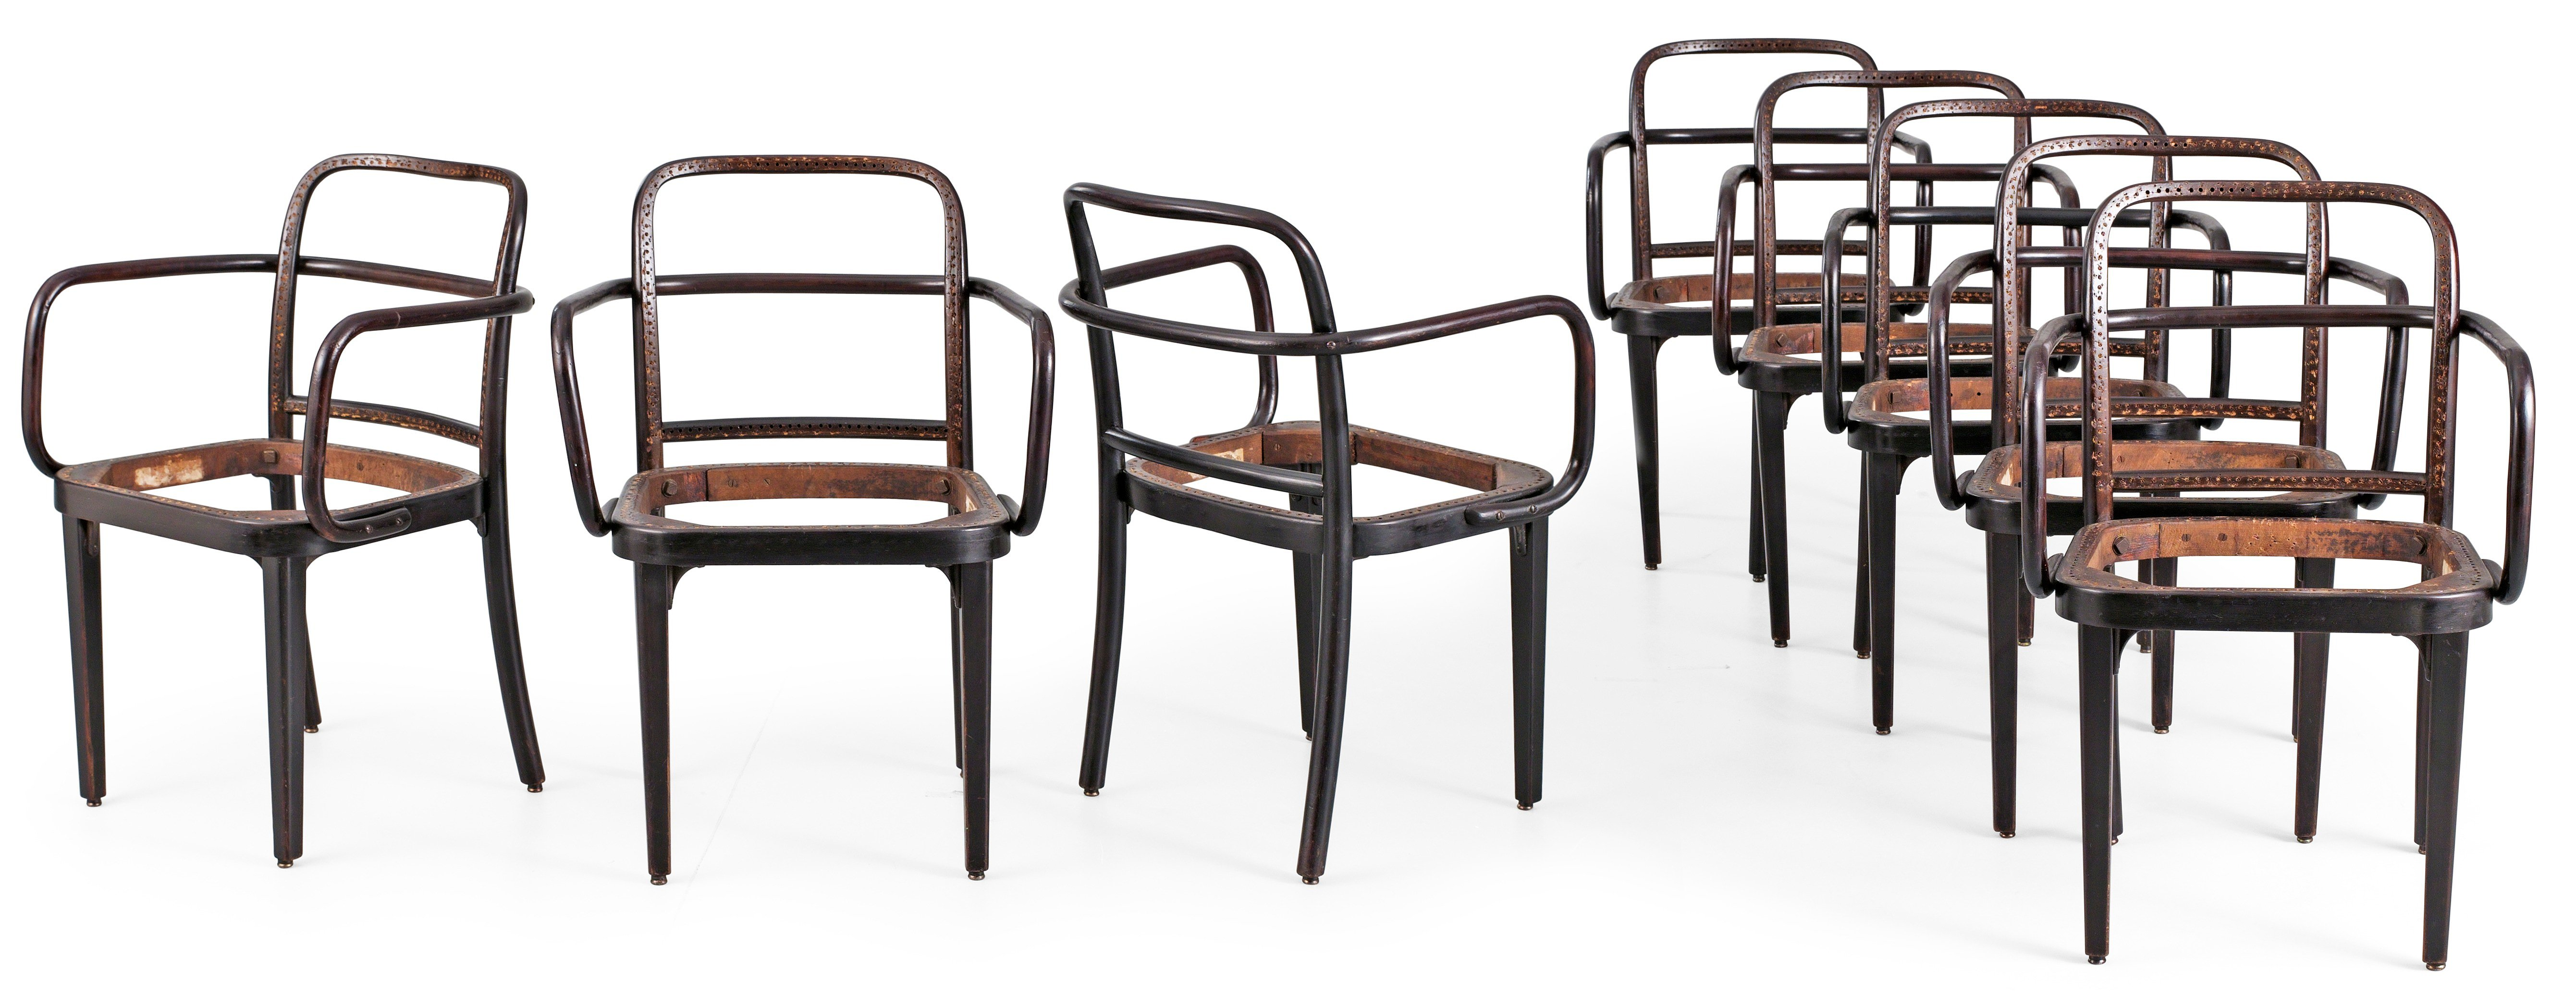 A set of eight dark stained bent wood chairs attributed to either